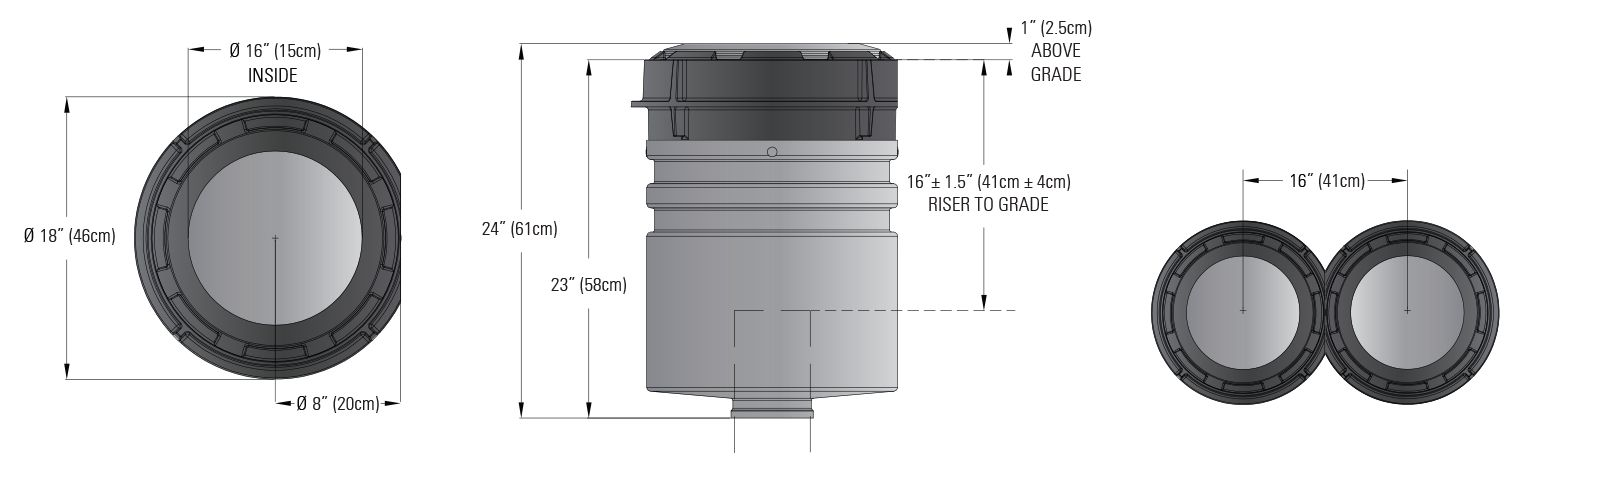 Defender Series Spill Containers - Grade Level Dims.psd